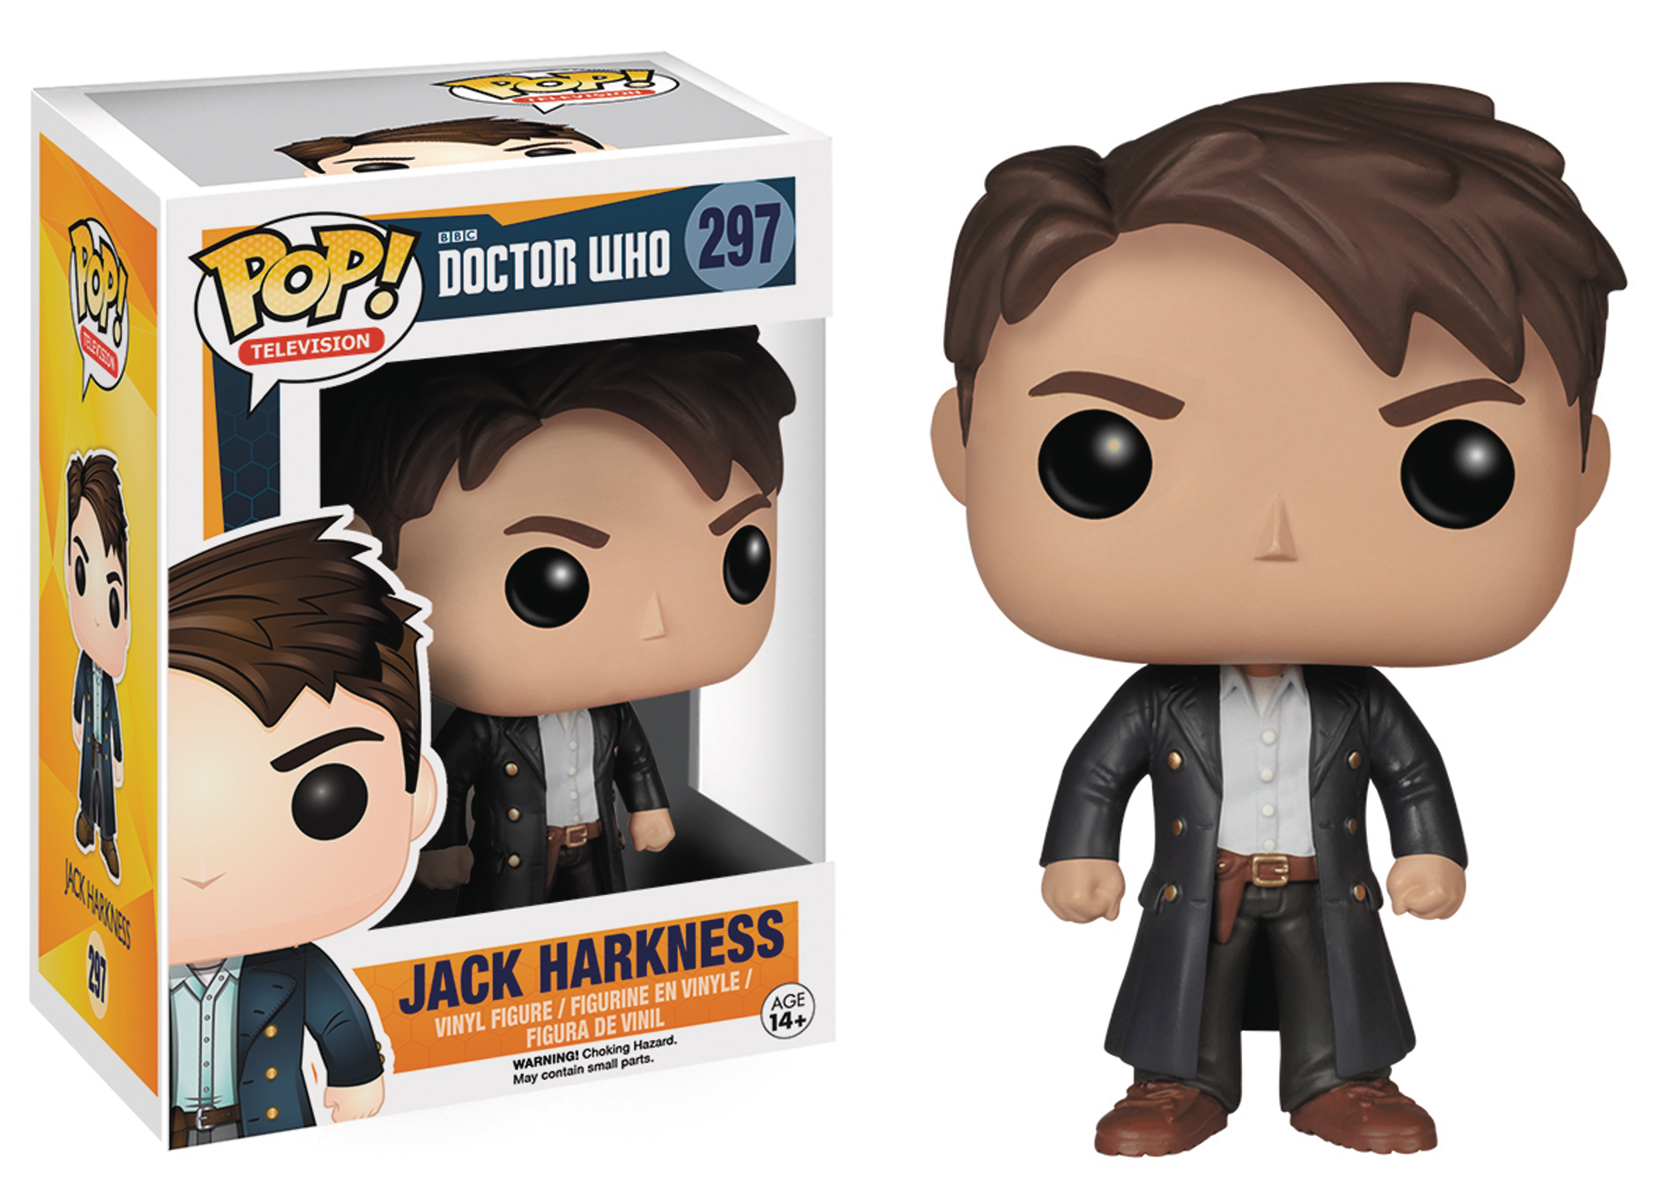 POP DOCTOR WHO JACK HARKNESS VINYL FIG